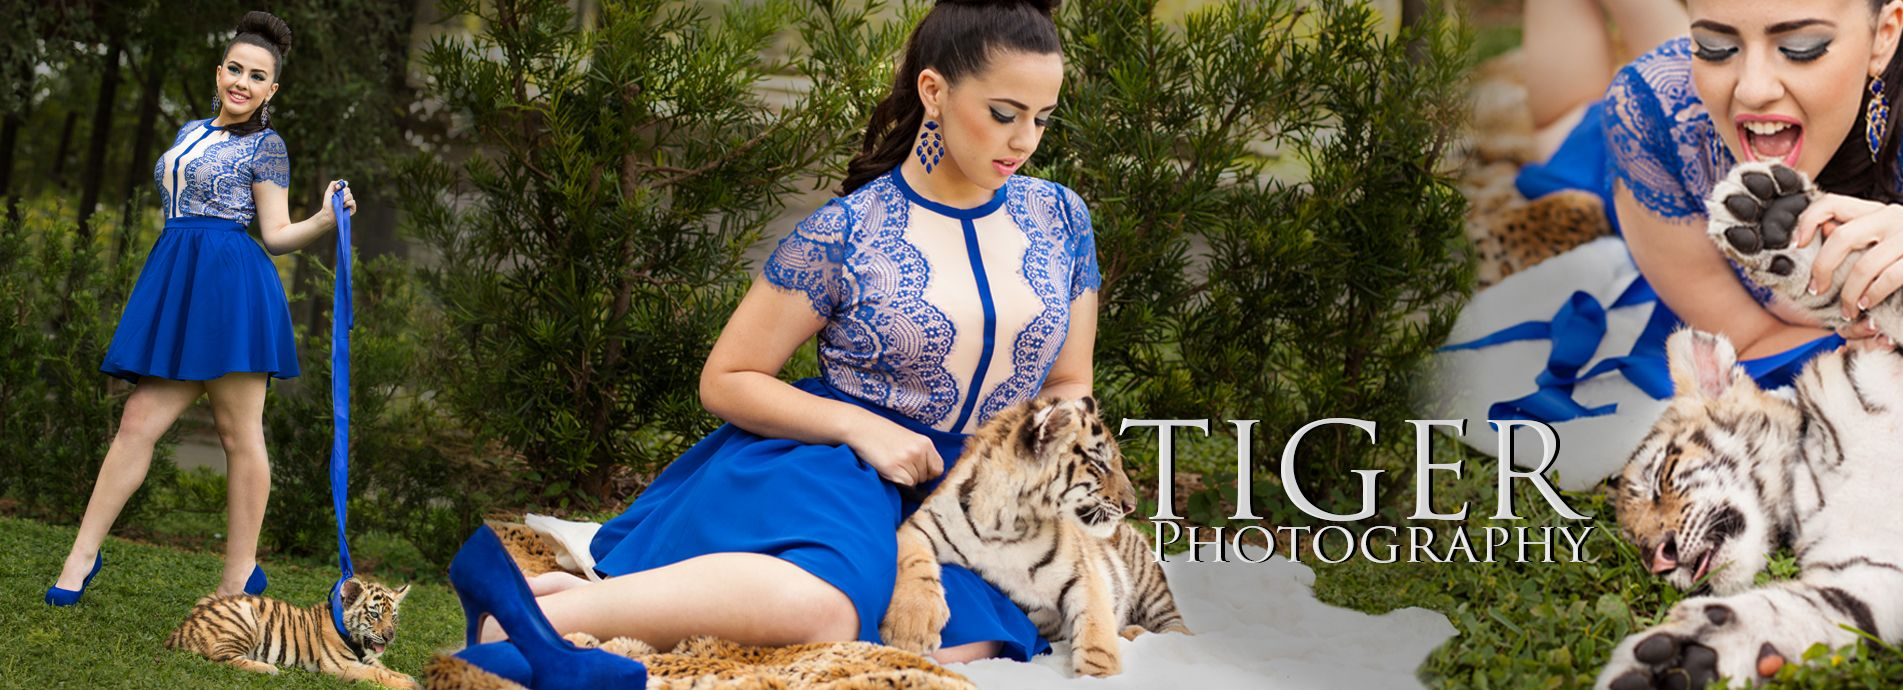 quinceanera photography tiger themes